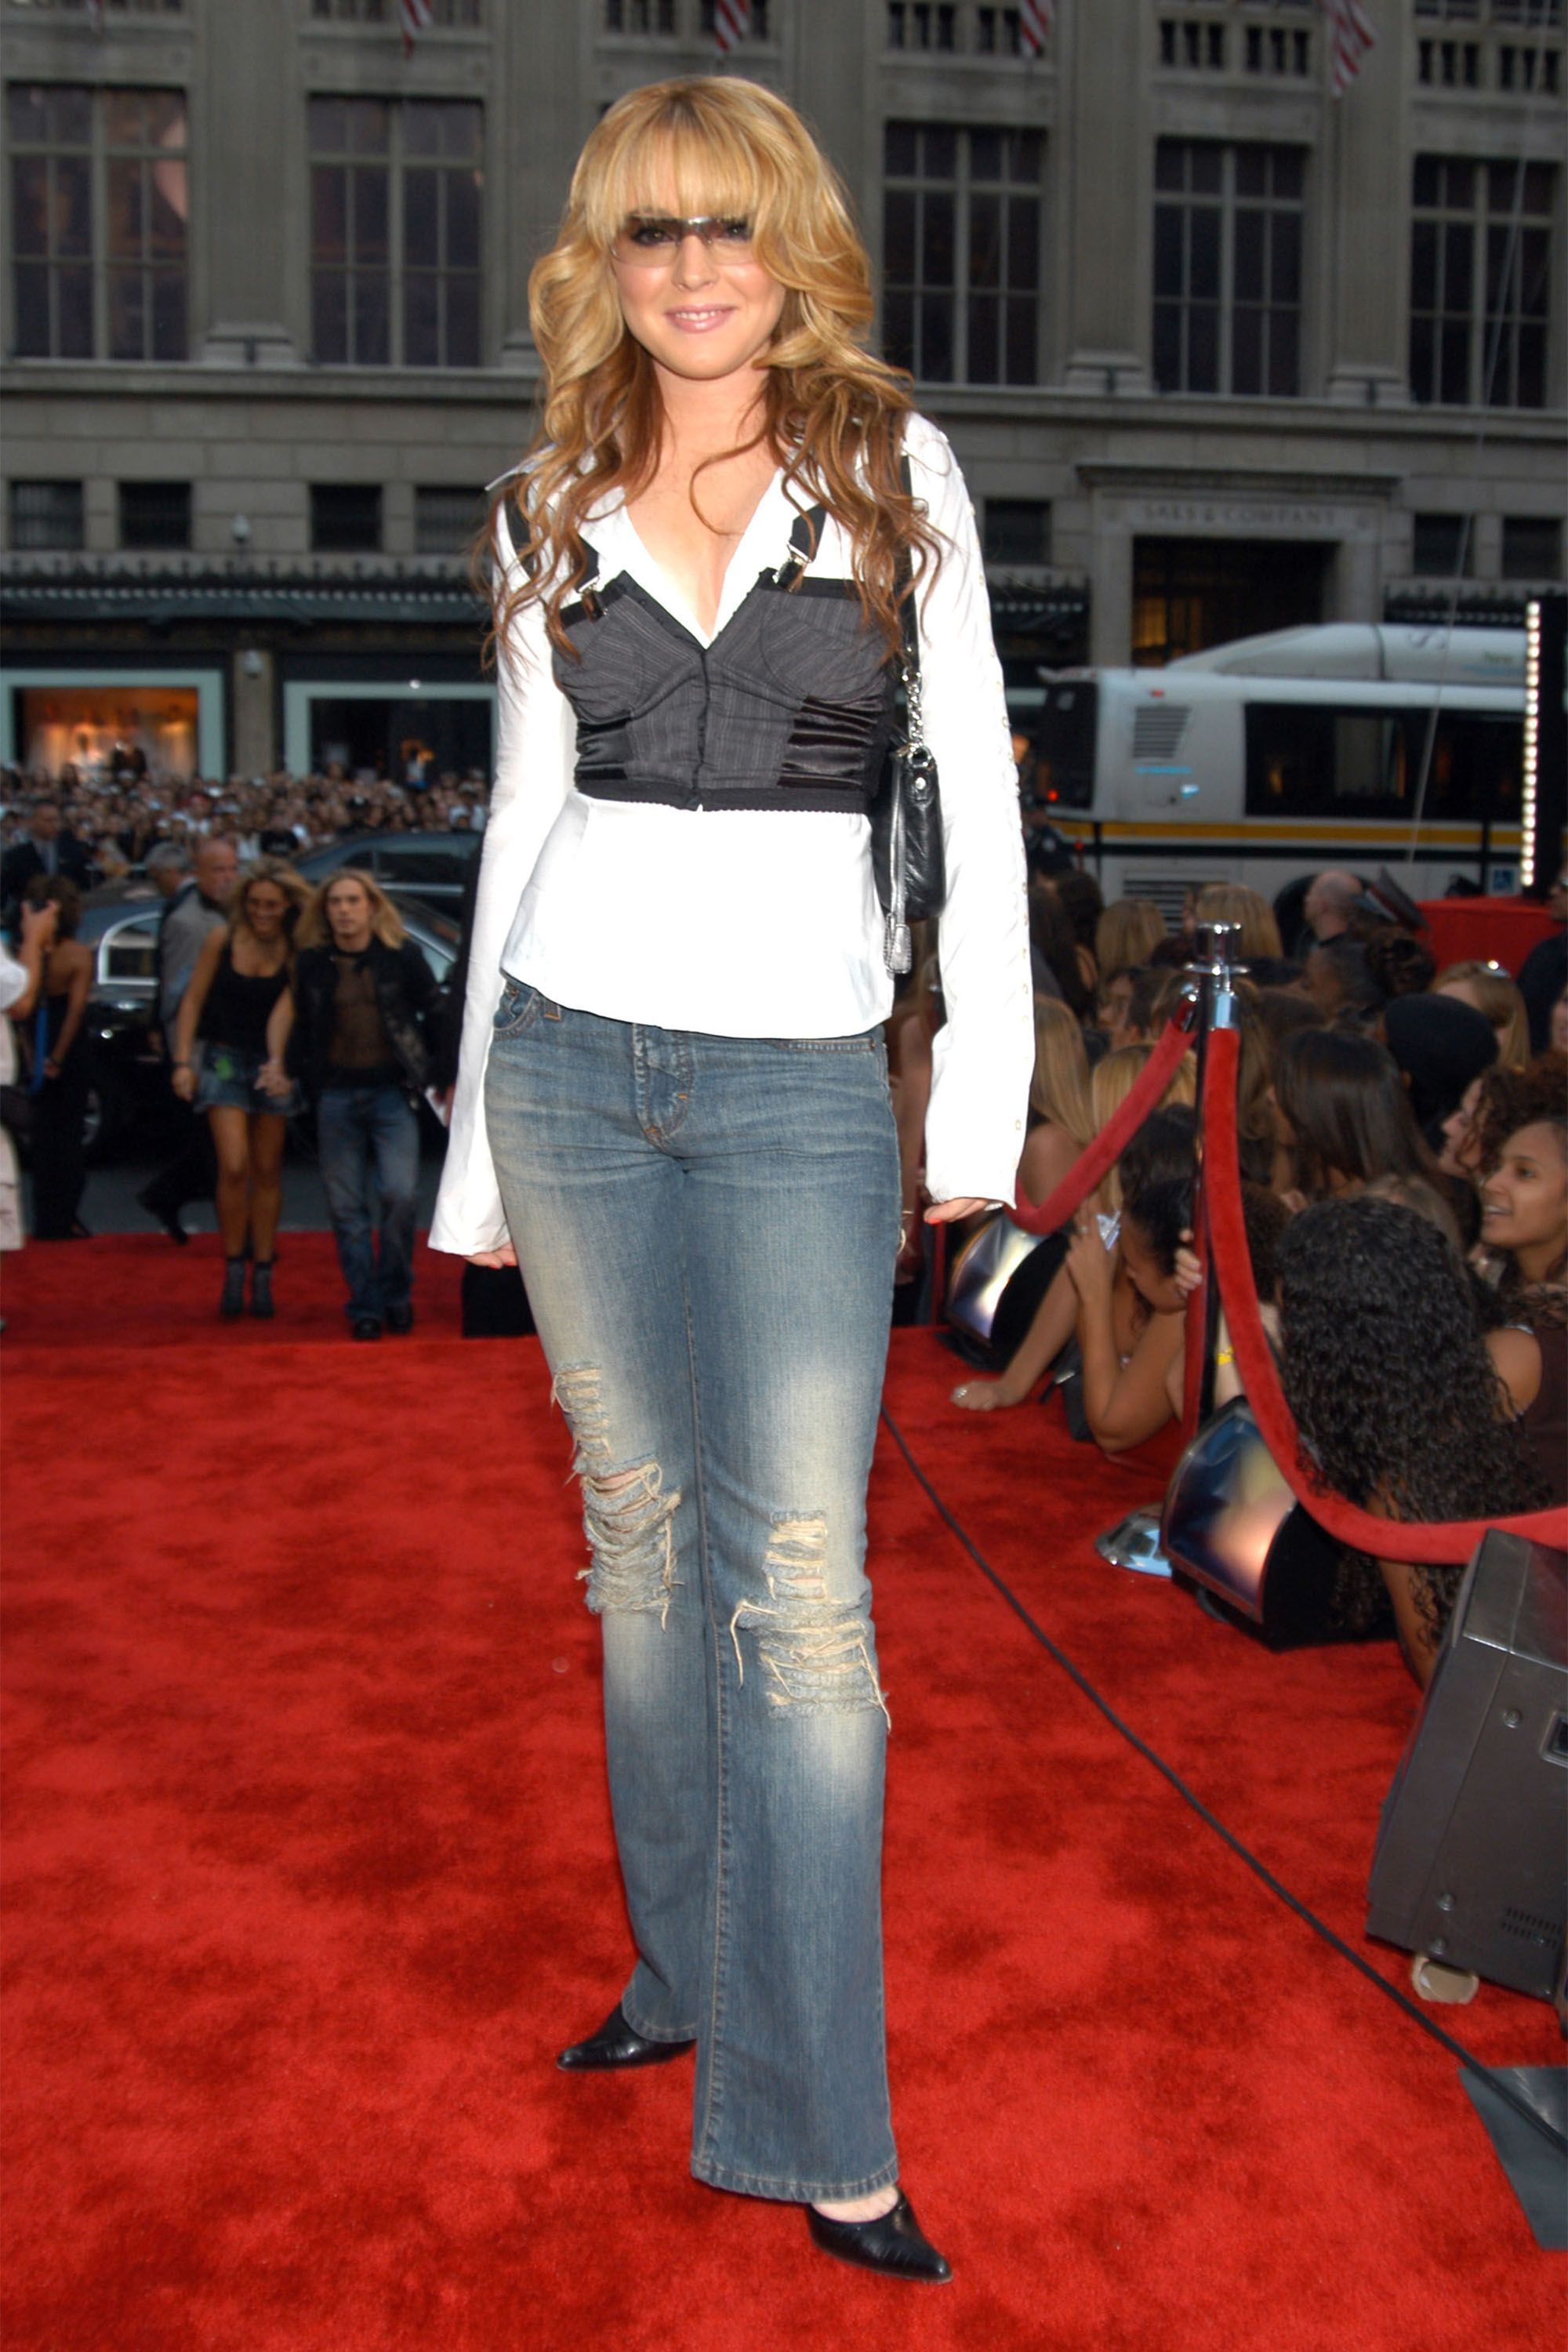 Crazy Celebrity Outfits We'll Never Forget Crazy Celebrity Outfits We'll Never Forget new photo